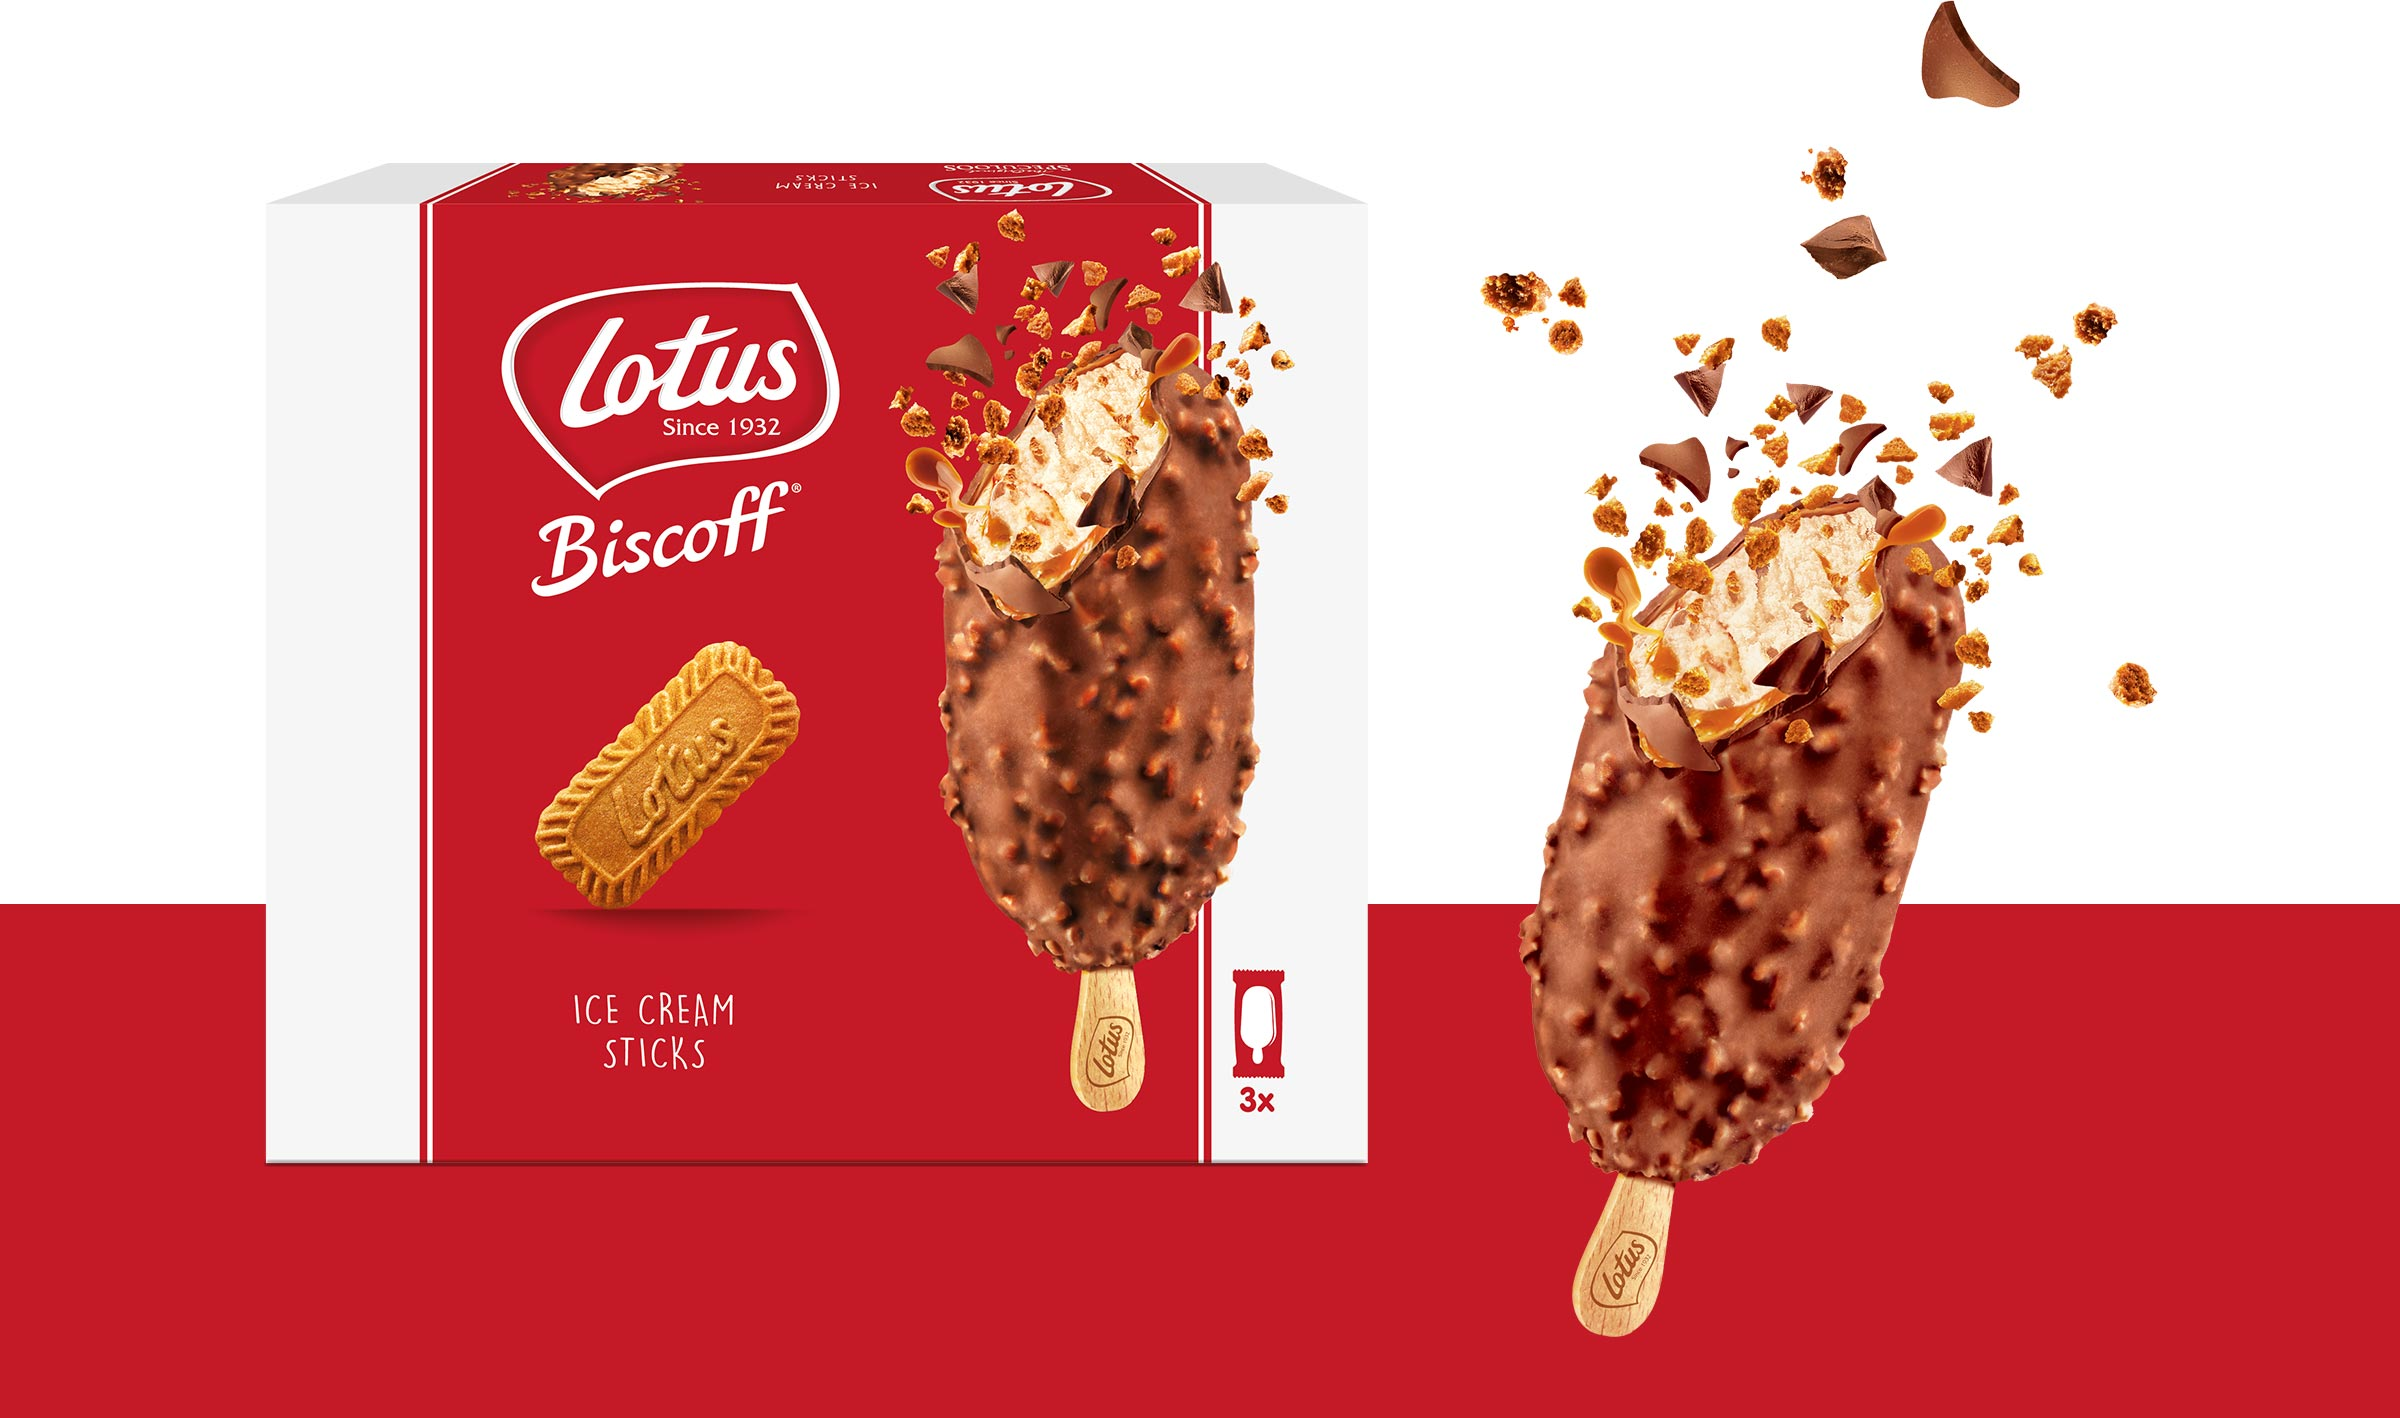 Lotus Biscoff's new ice cream product packaging and the product next to it with chocolate bursting off of it.